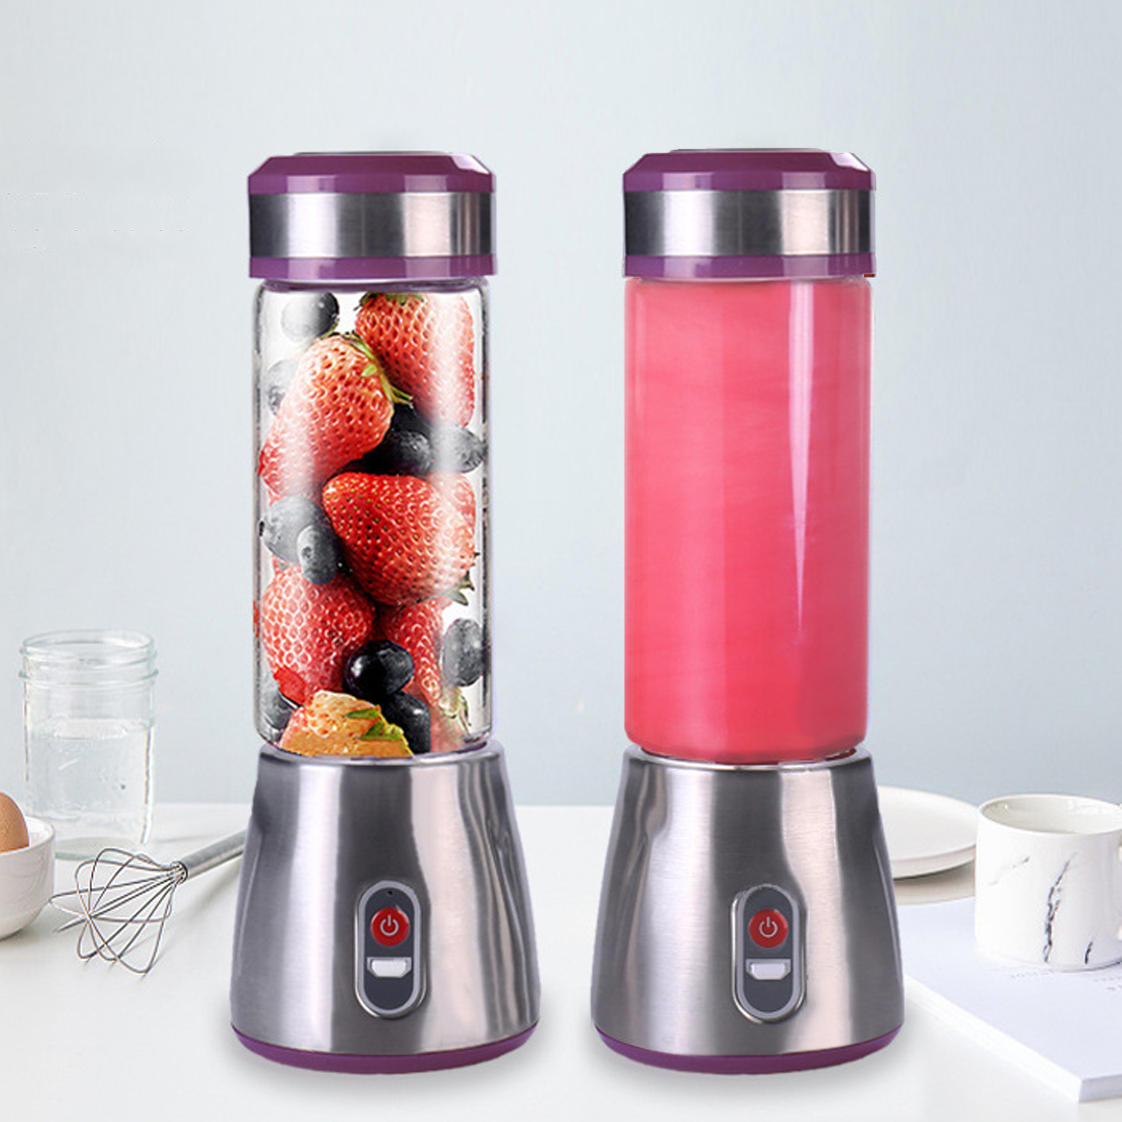 20W 500ml Mini Portable USB Electric Fruit Juicer Blender Maker Mix Juice  Shaker